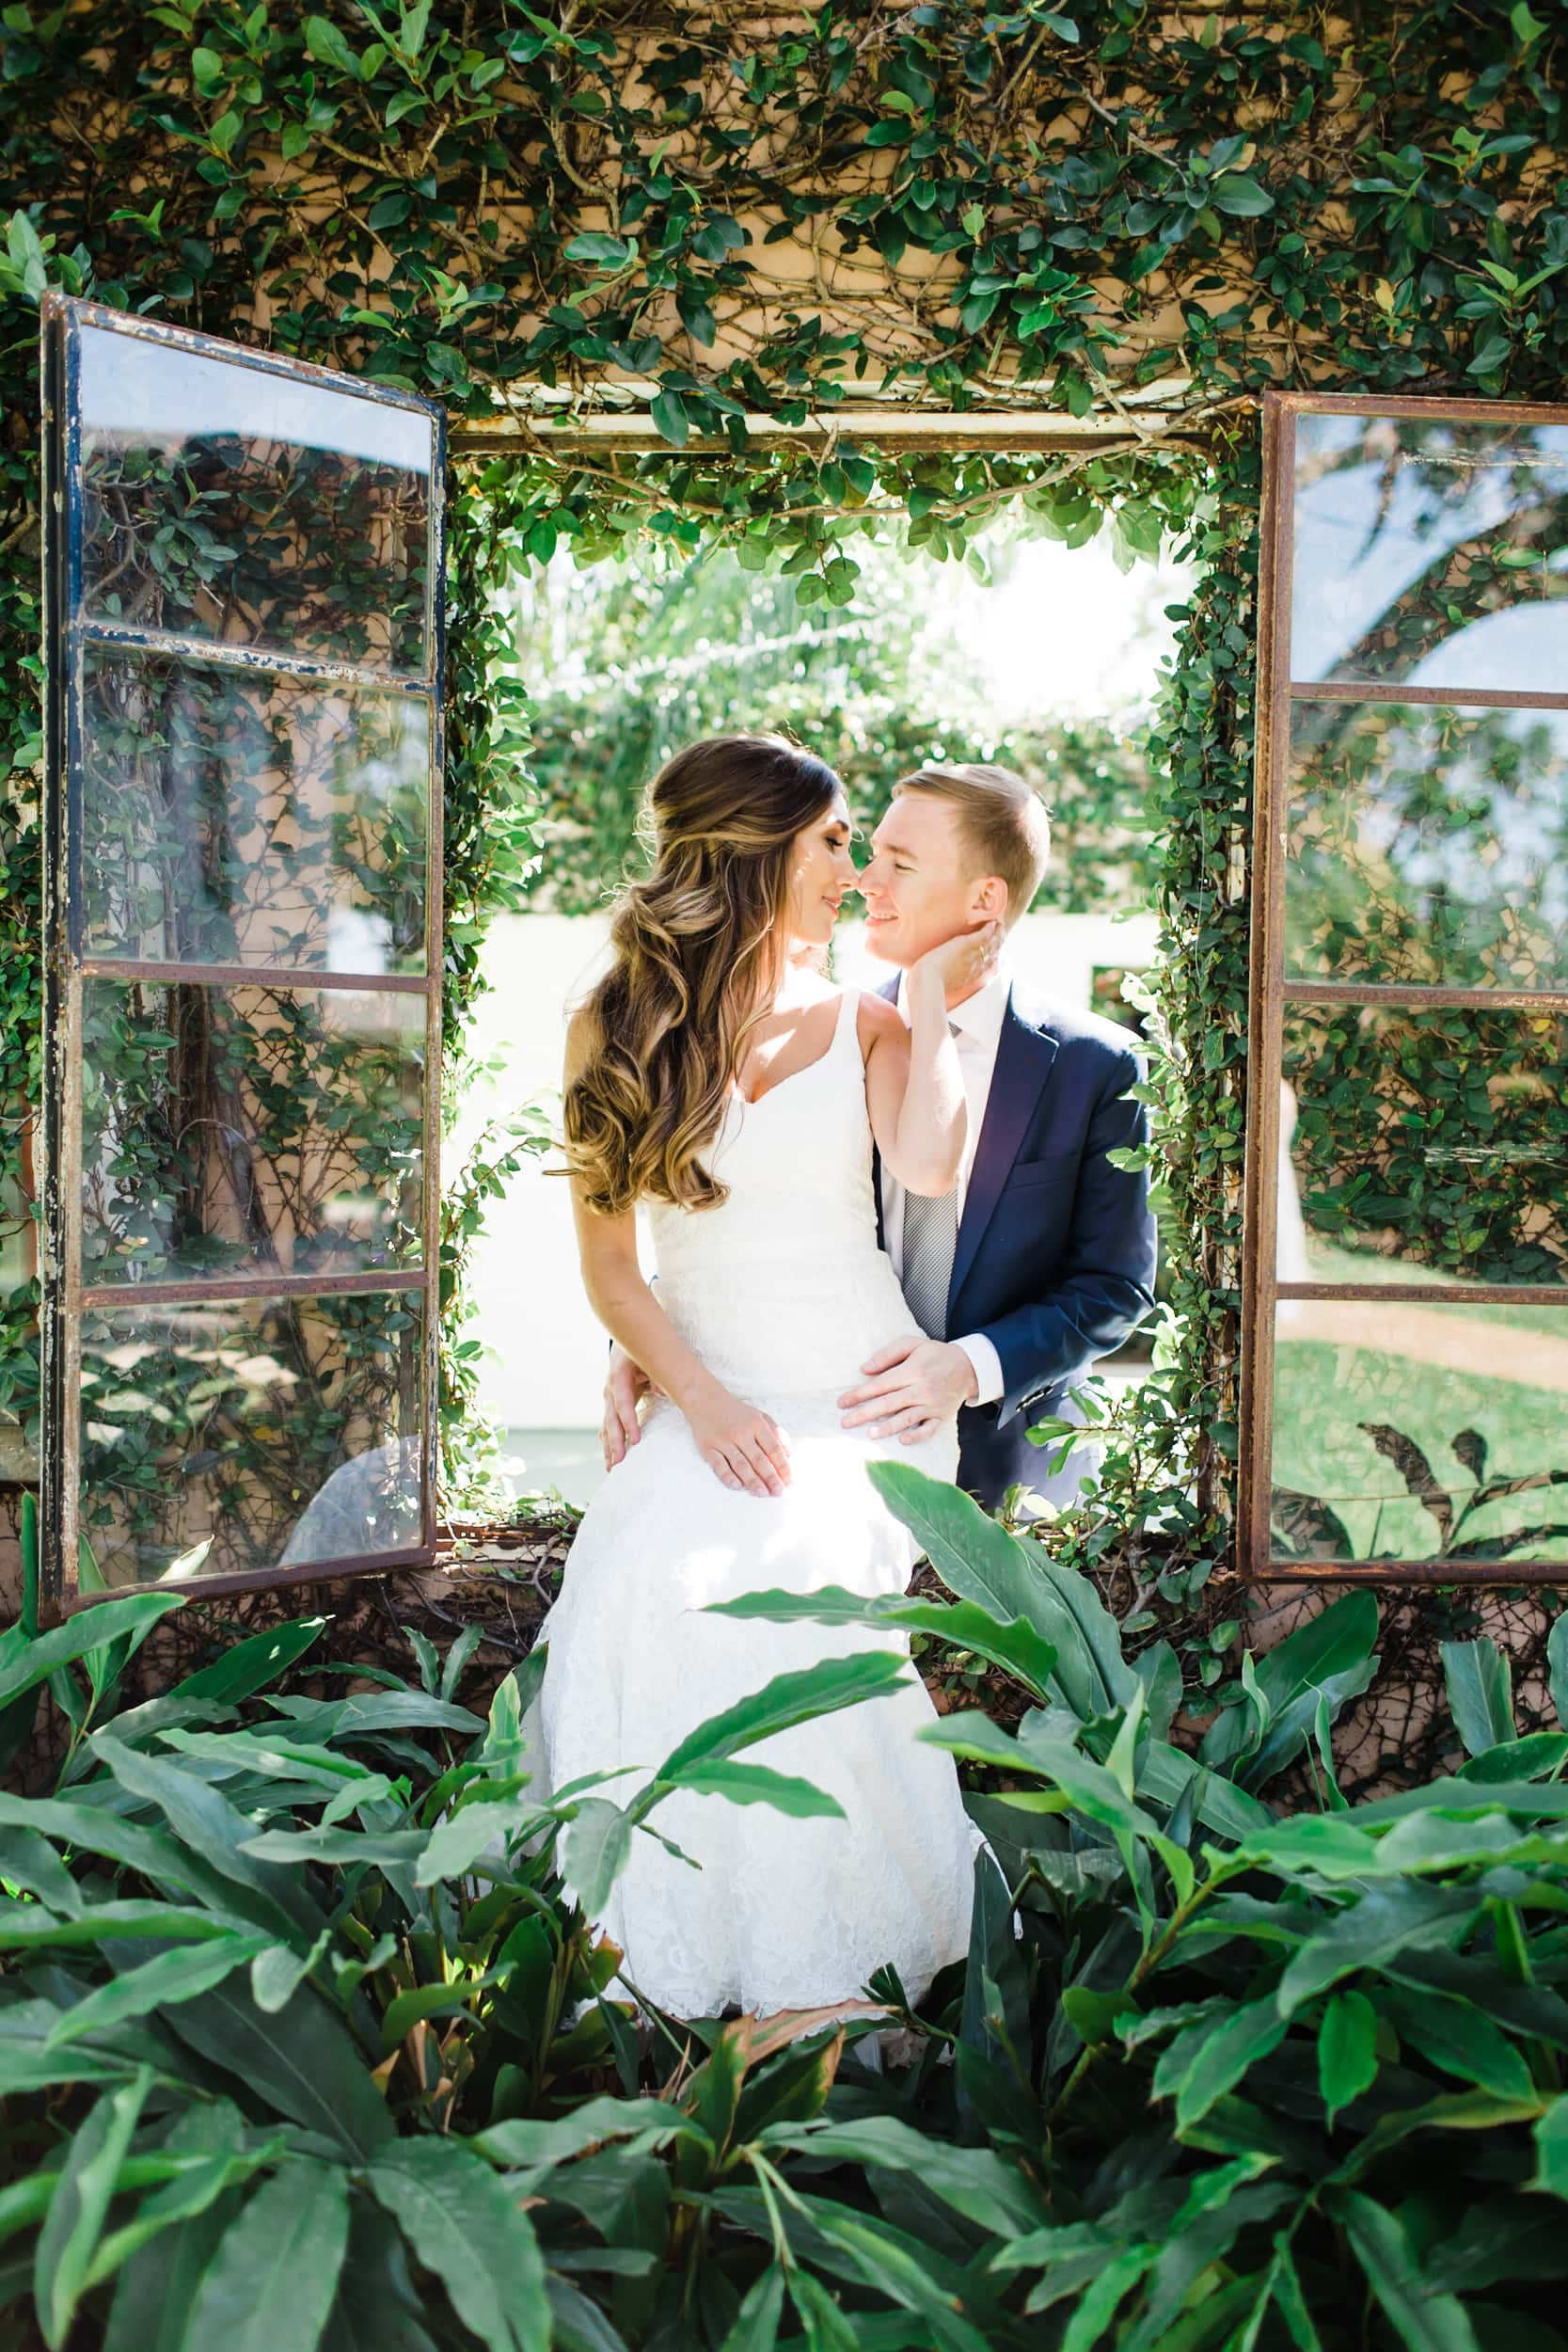 bride sitting on a windowsill embracing her groom on an ivy covered wall